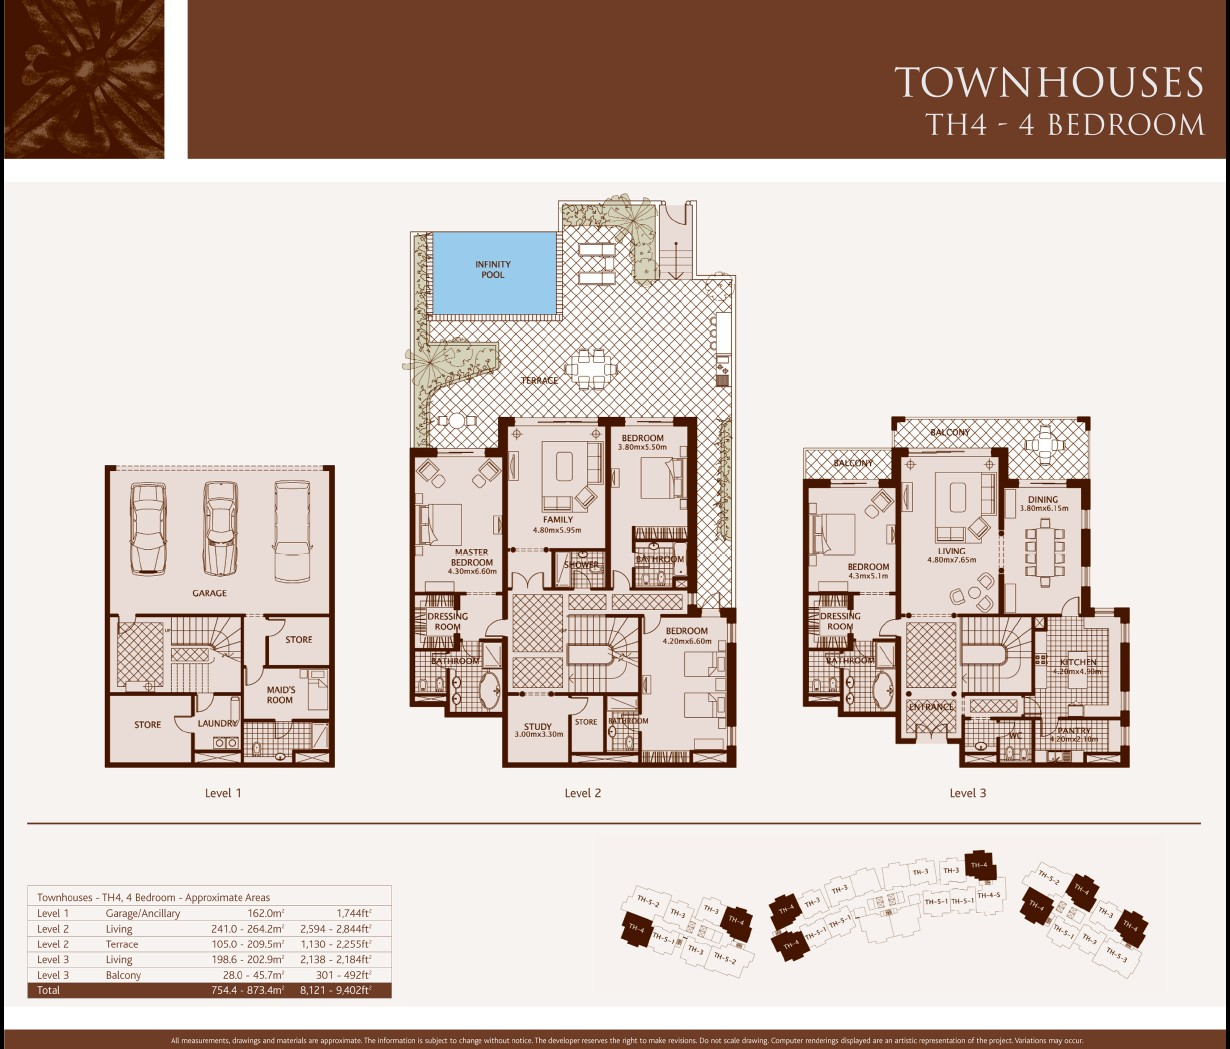 Townhouse floor plans clearview farms apartments townhouses floor plans townhouse floor plans Modern townhouse plans